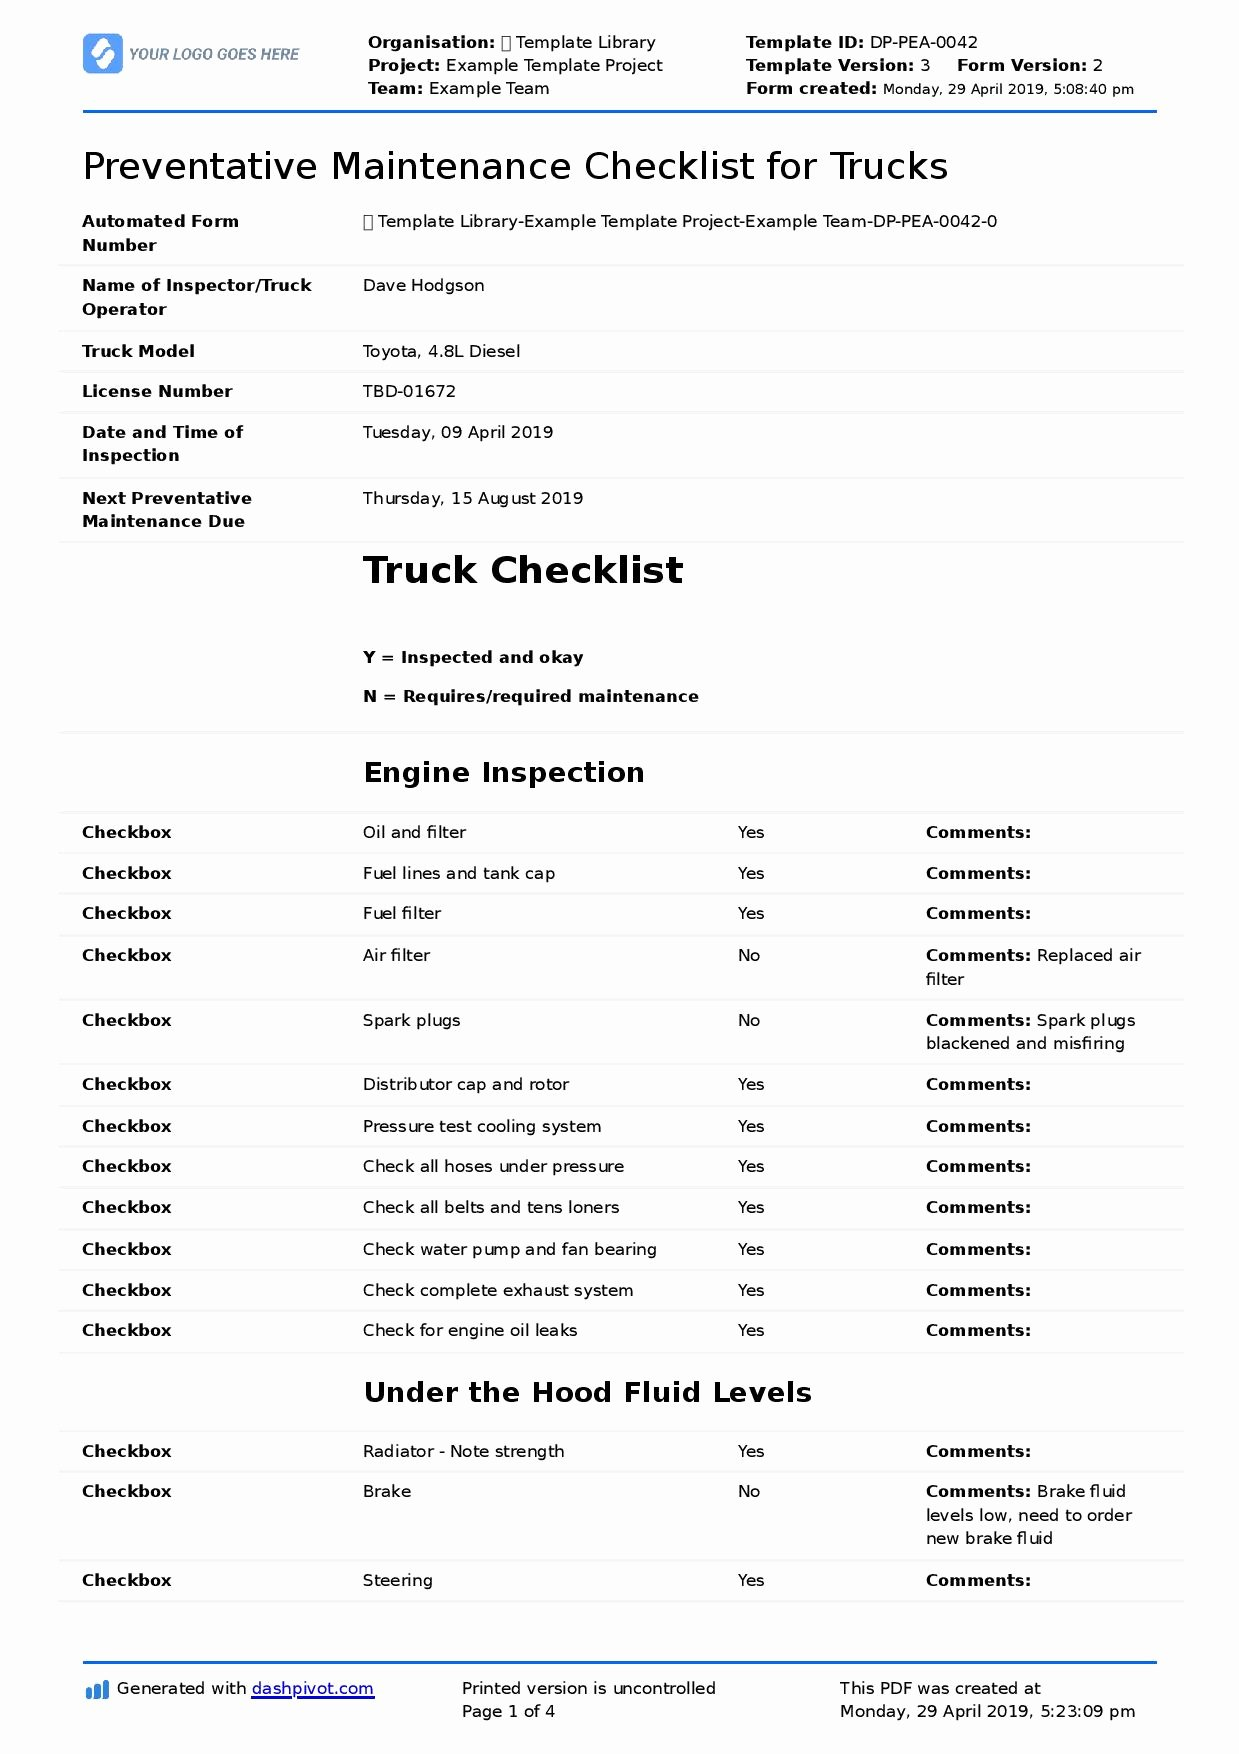 Preventive Maintenance form Template Fresh Preventative Maintenance Checklist for Trucks Diesel